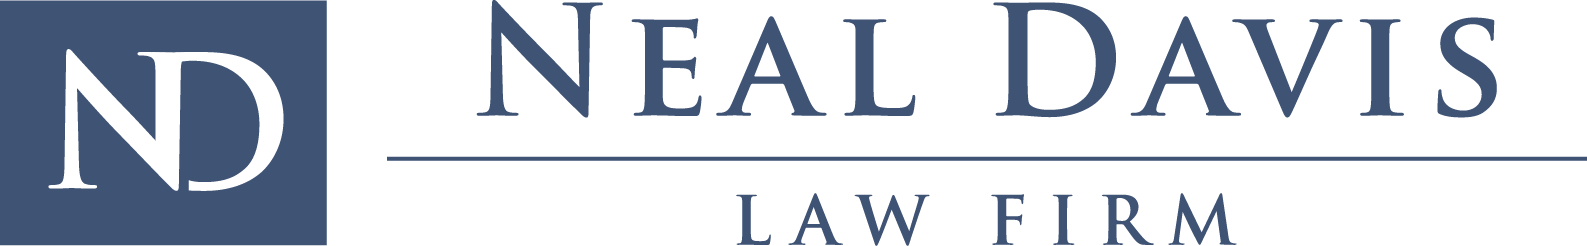 Neal Davis Law Firm, PLLC Profile Picture